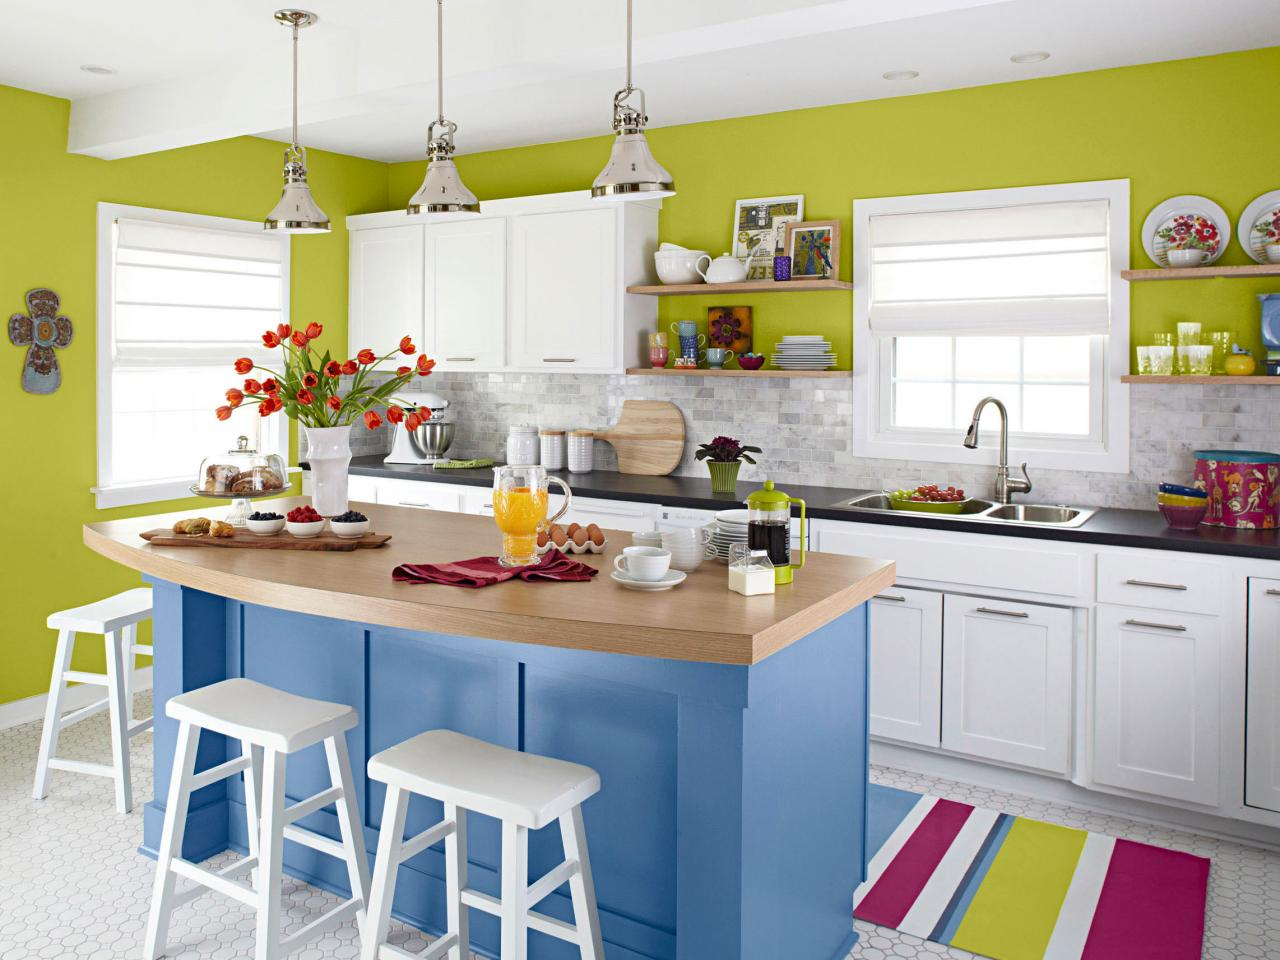 Fullsize Of Kitchen Design With Islands